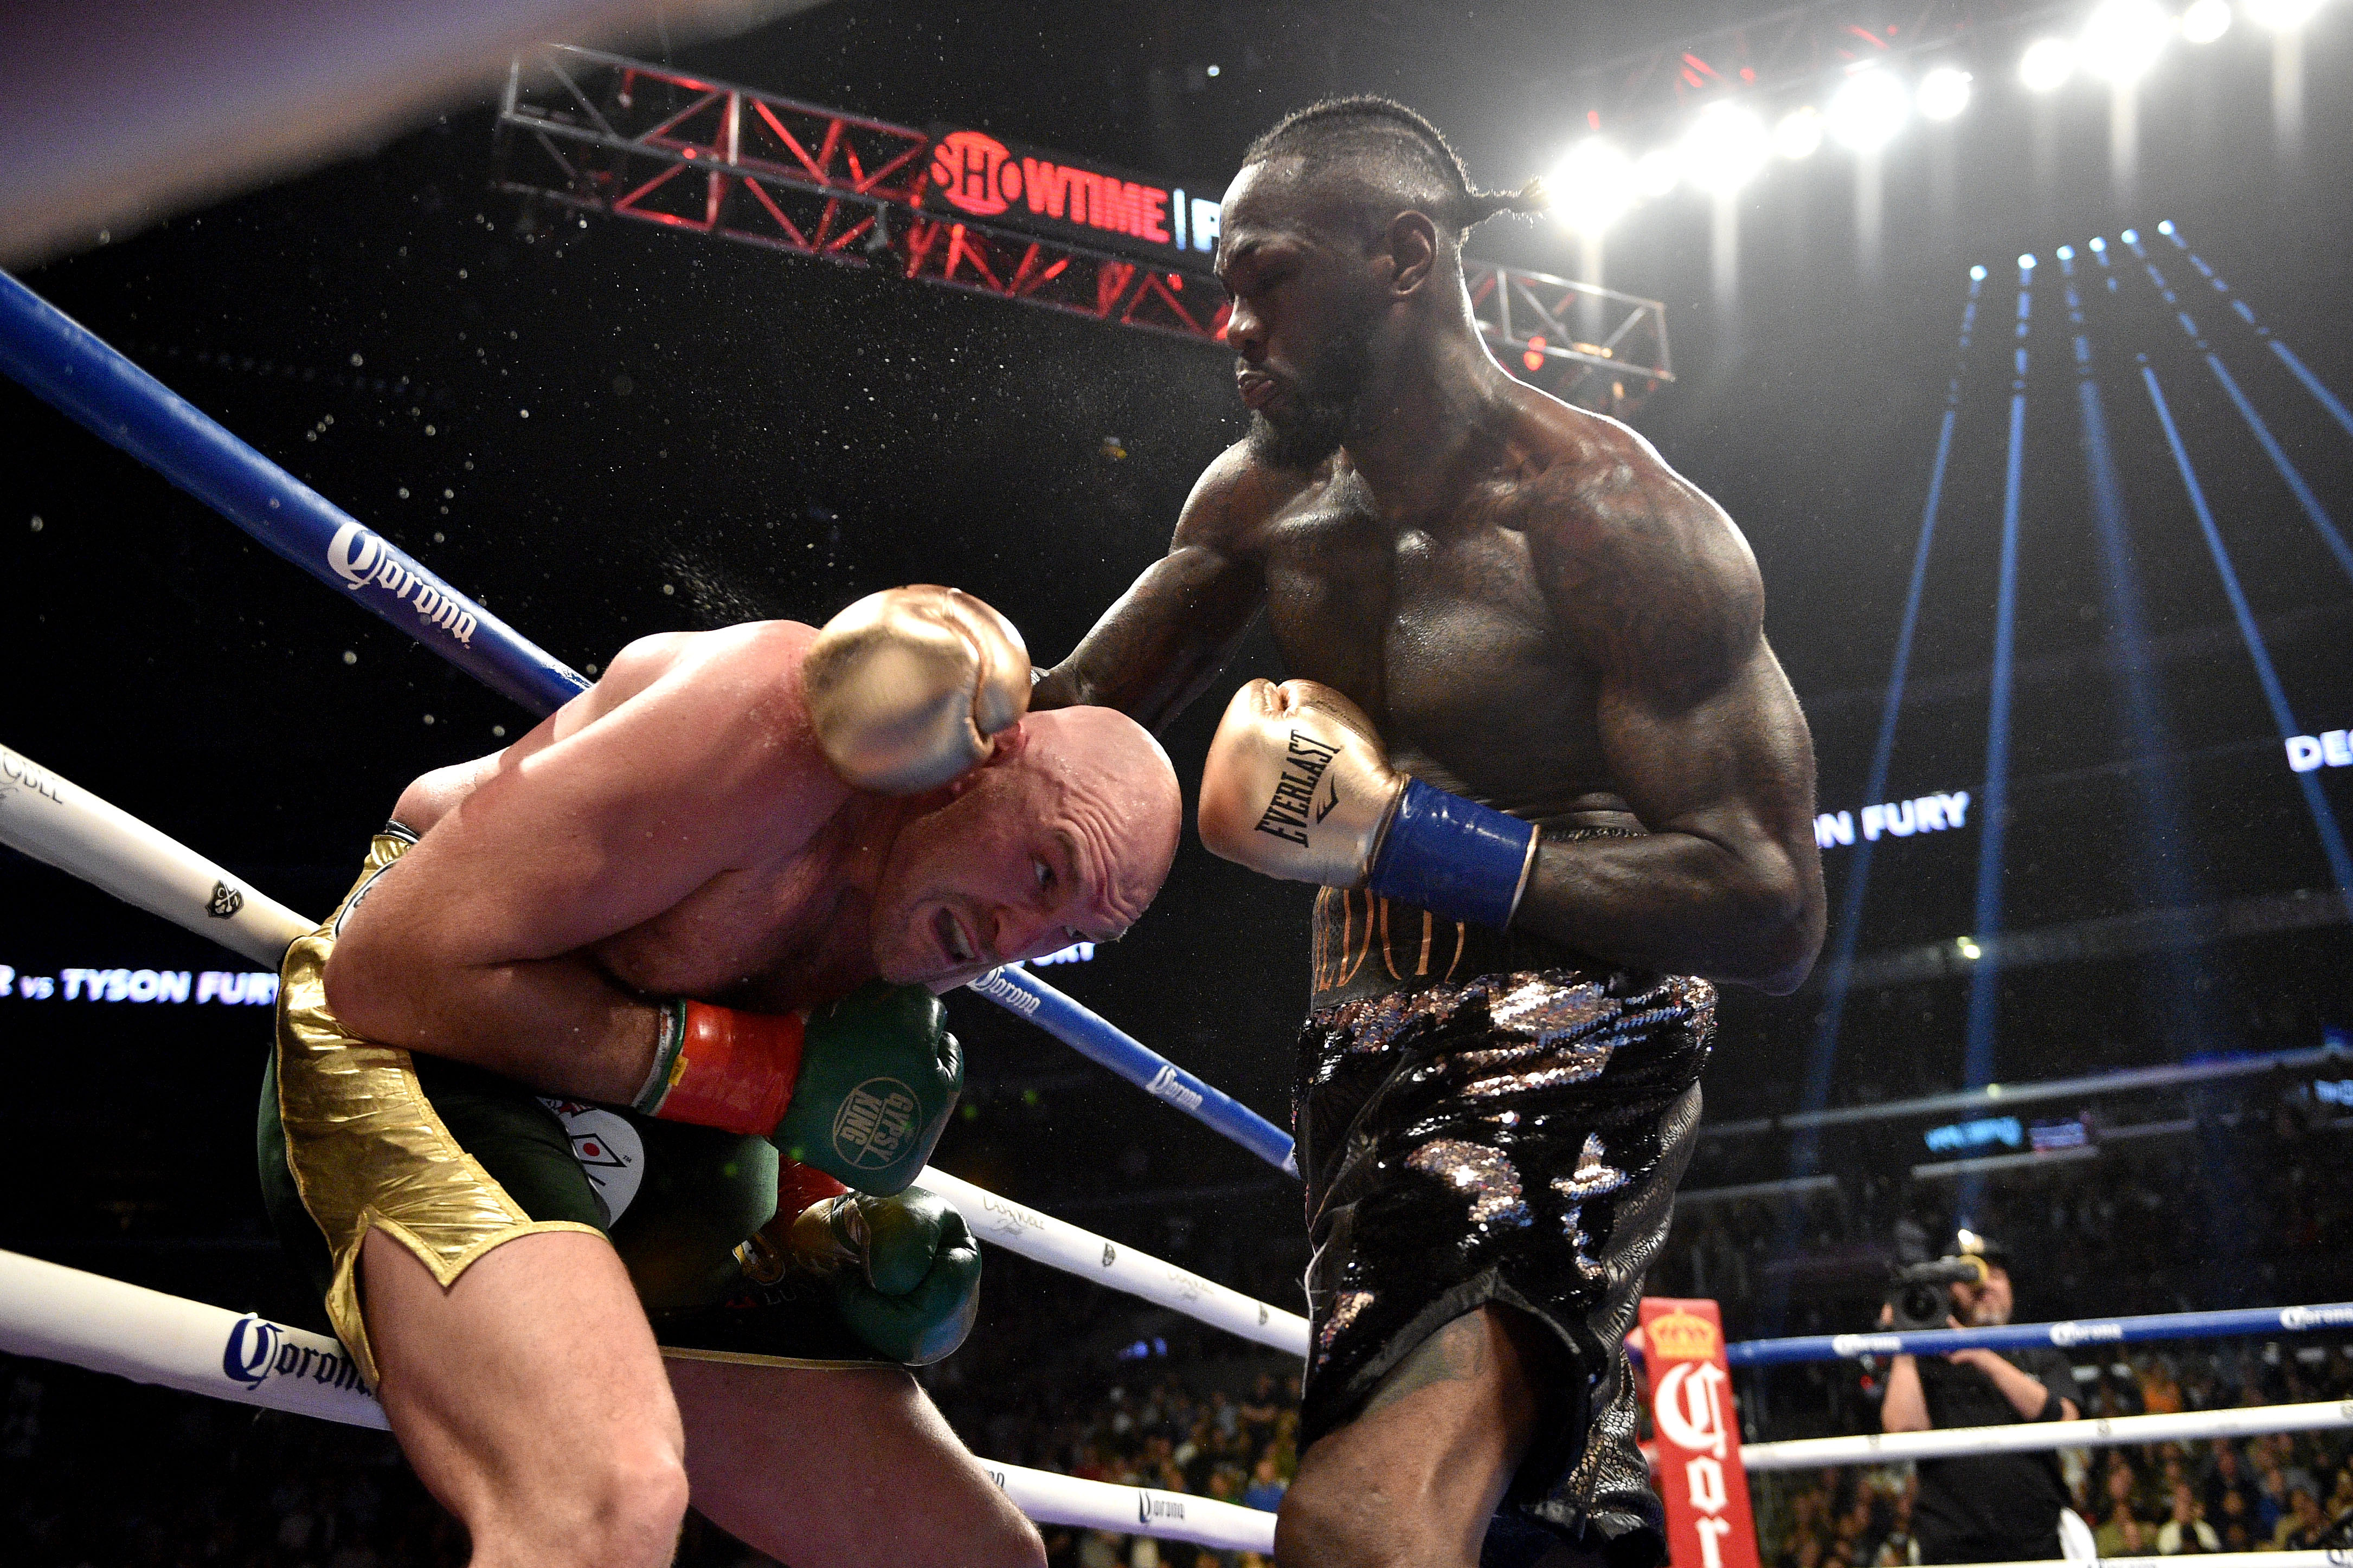 Tyson Fury gets whacked Deontay Wilder. Credit: PA